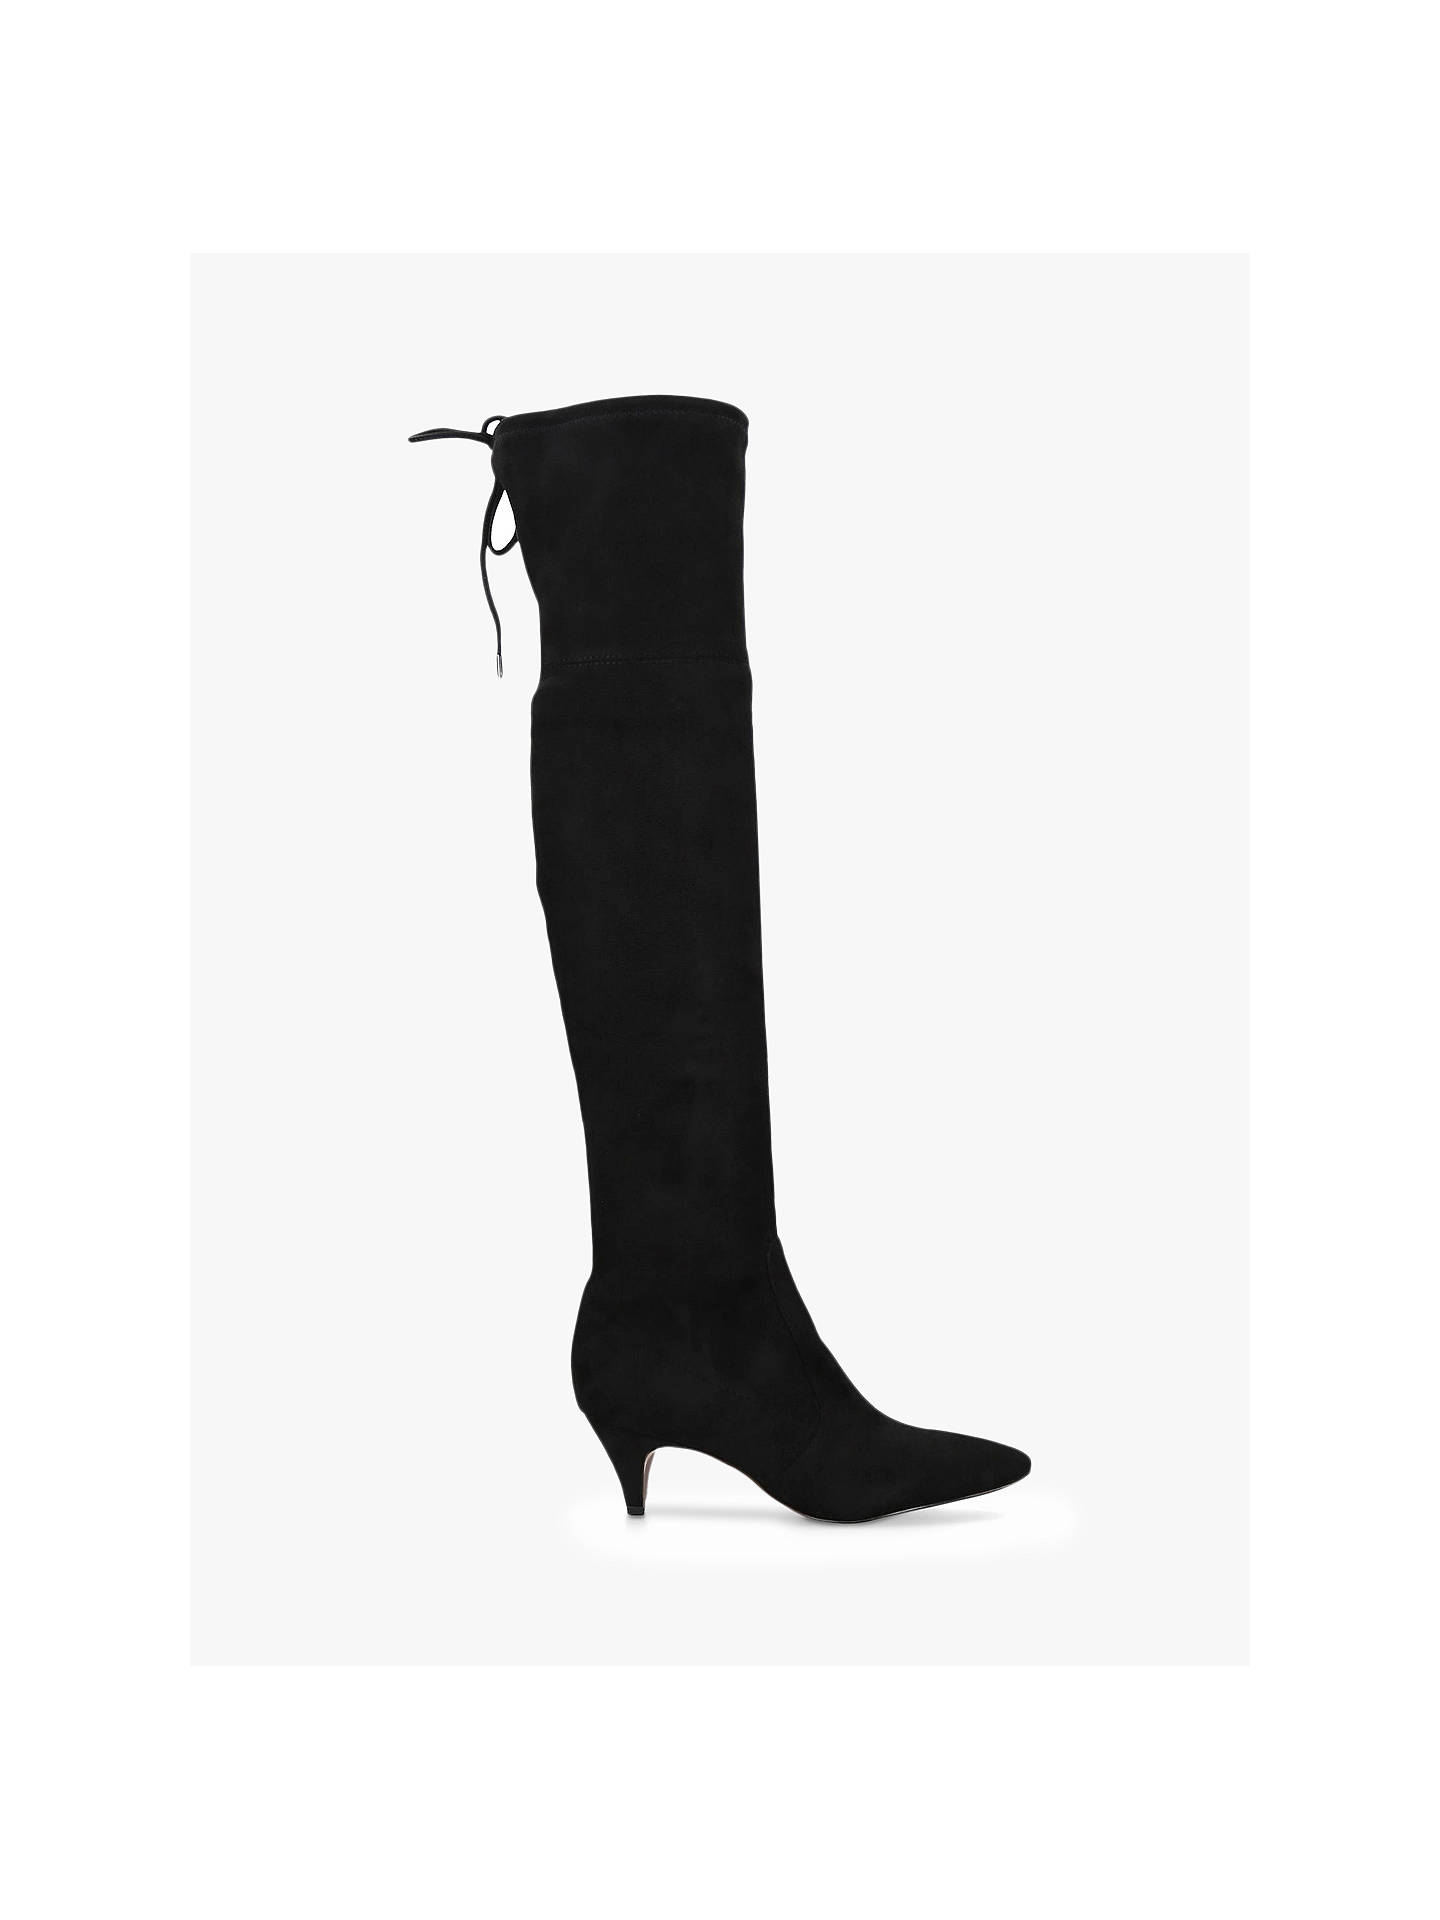 5ed38c07a30 Buy Sam Edelman Kristie Knee High Boots